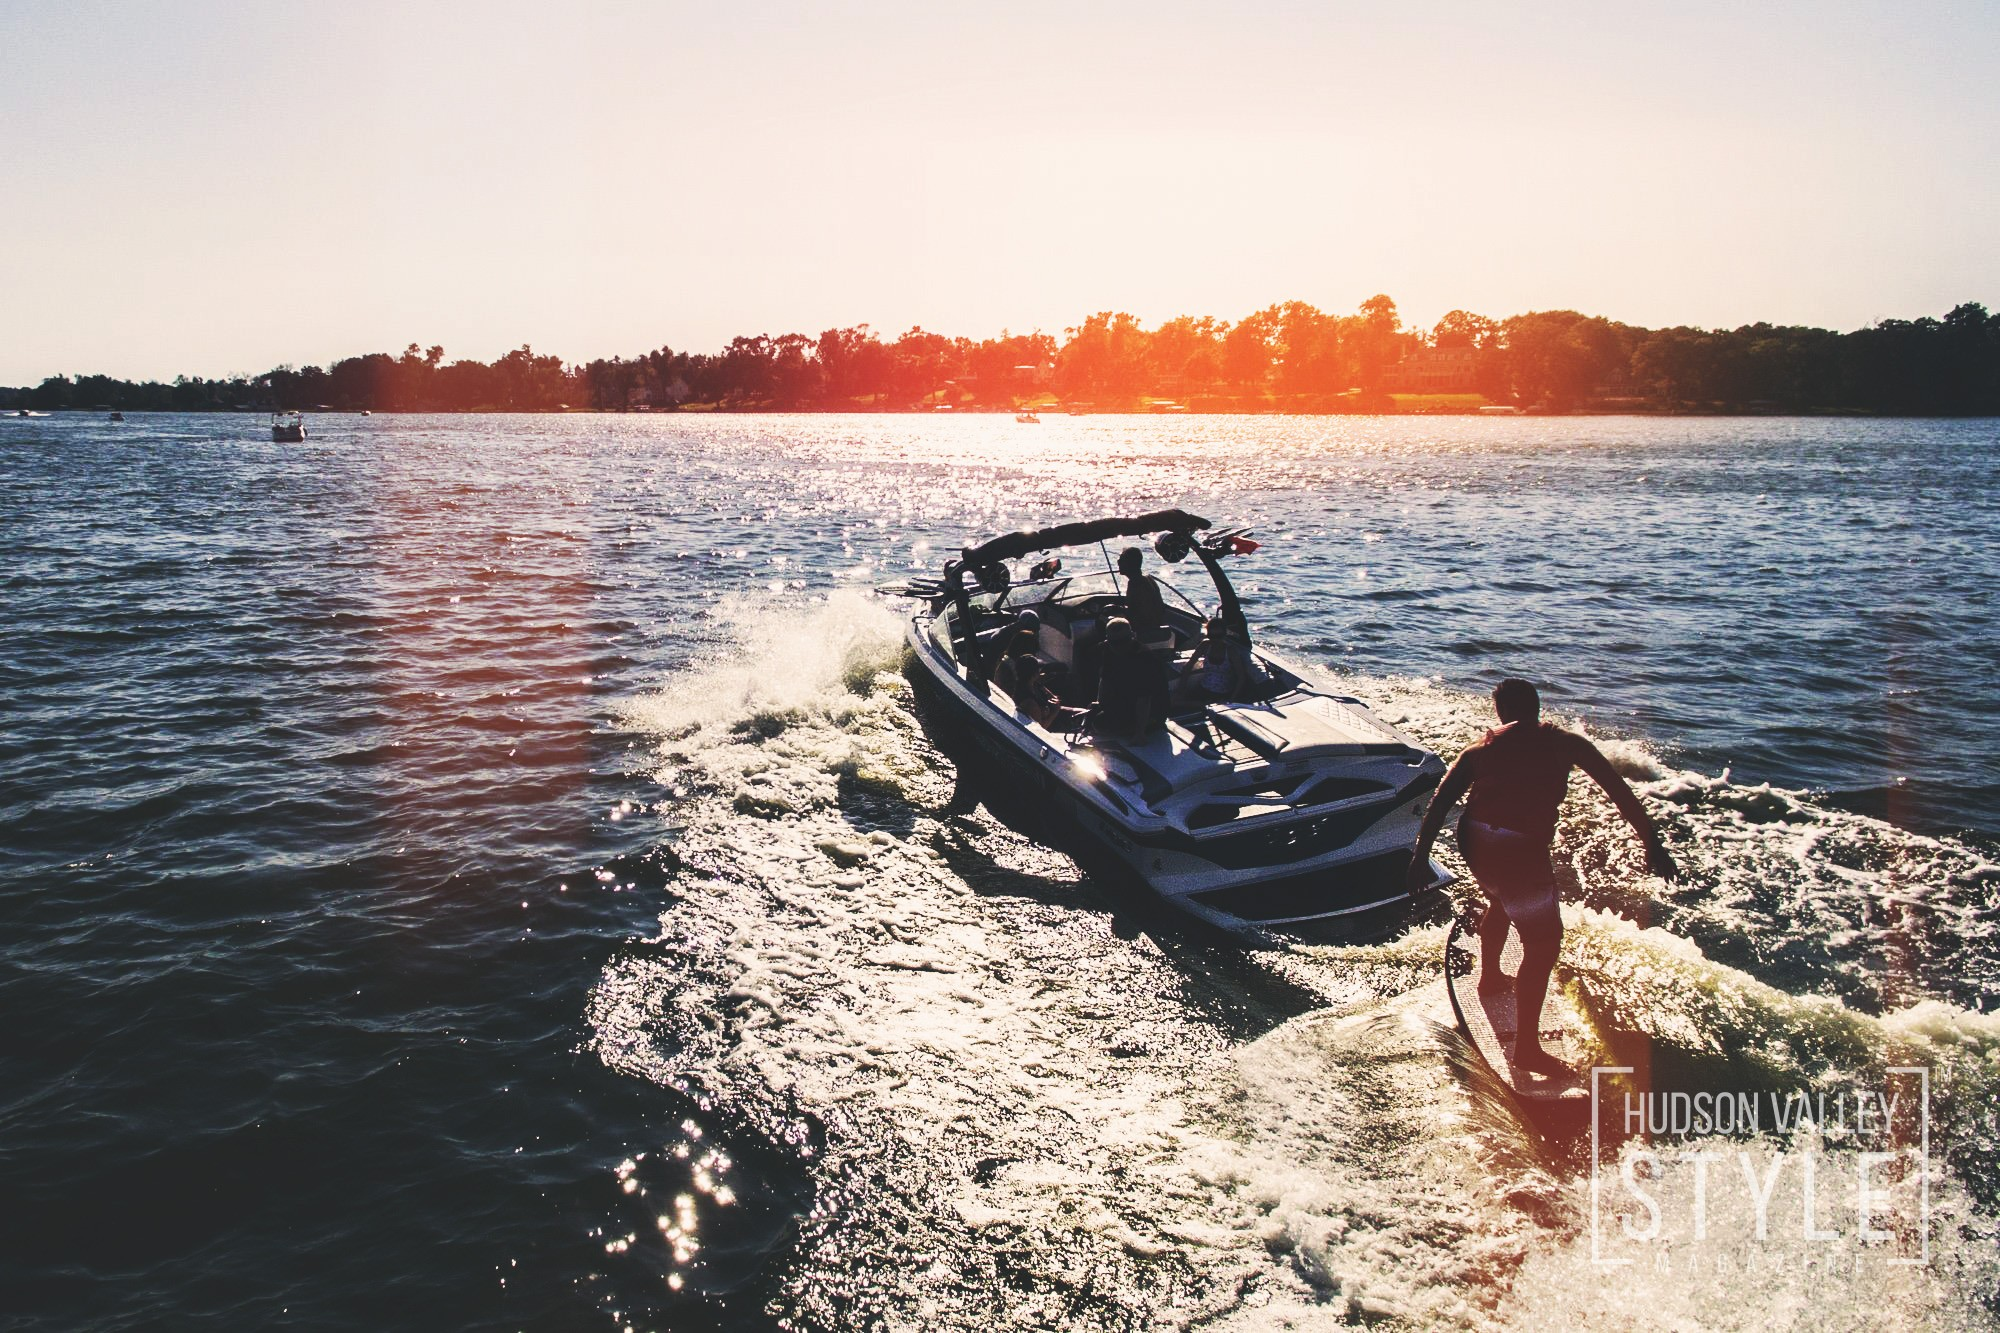 Let's go boating: 4 ways to get out on the water this fall - Hudson Valley Style Magazine